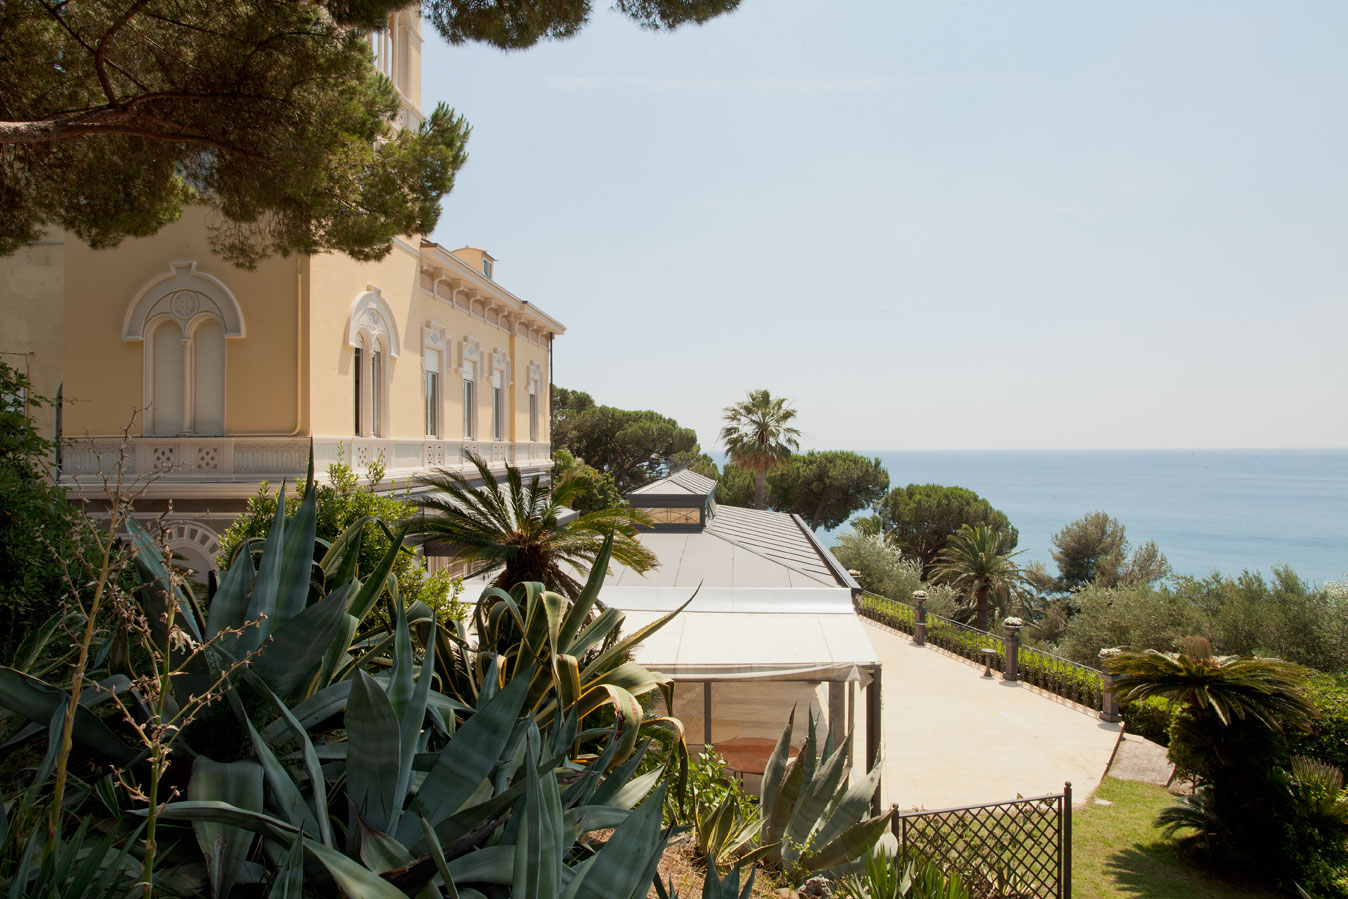 Single Family Home for Sale at Art Nouveau villa overlooking the italian Riviera Celle Ligure Celle Ligure, Savona, 17015 Liguria, Italy